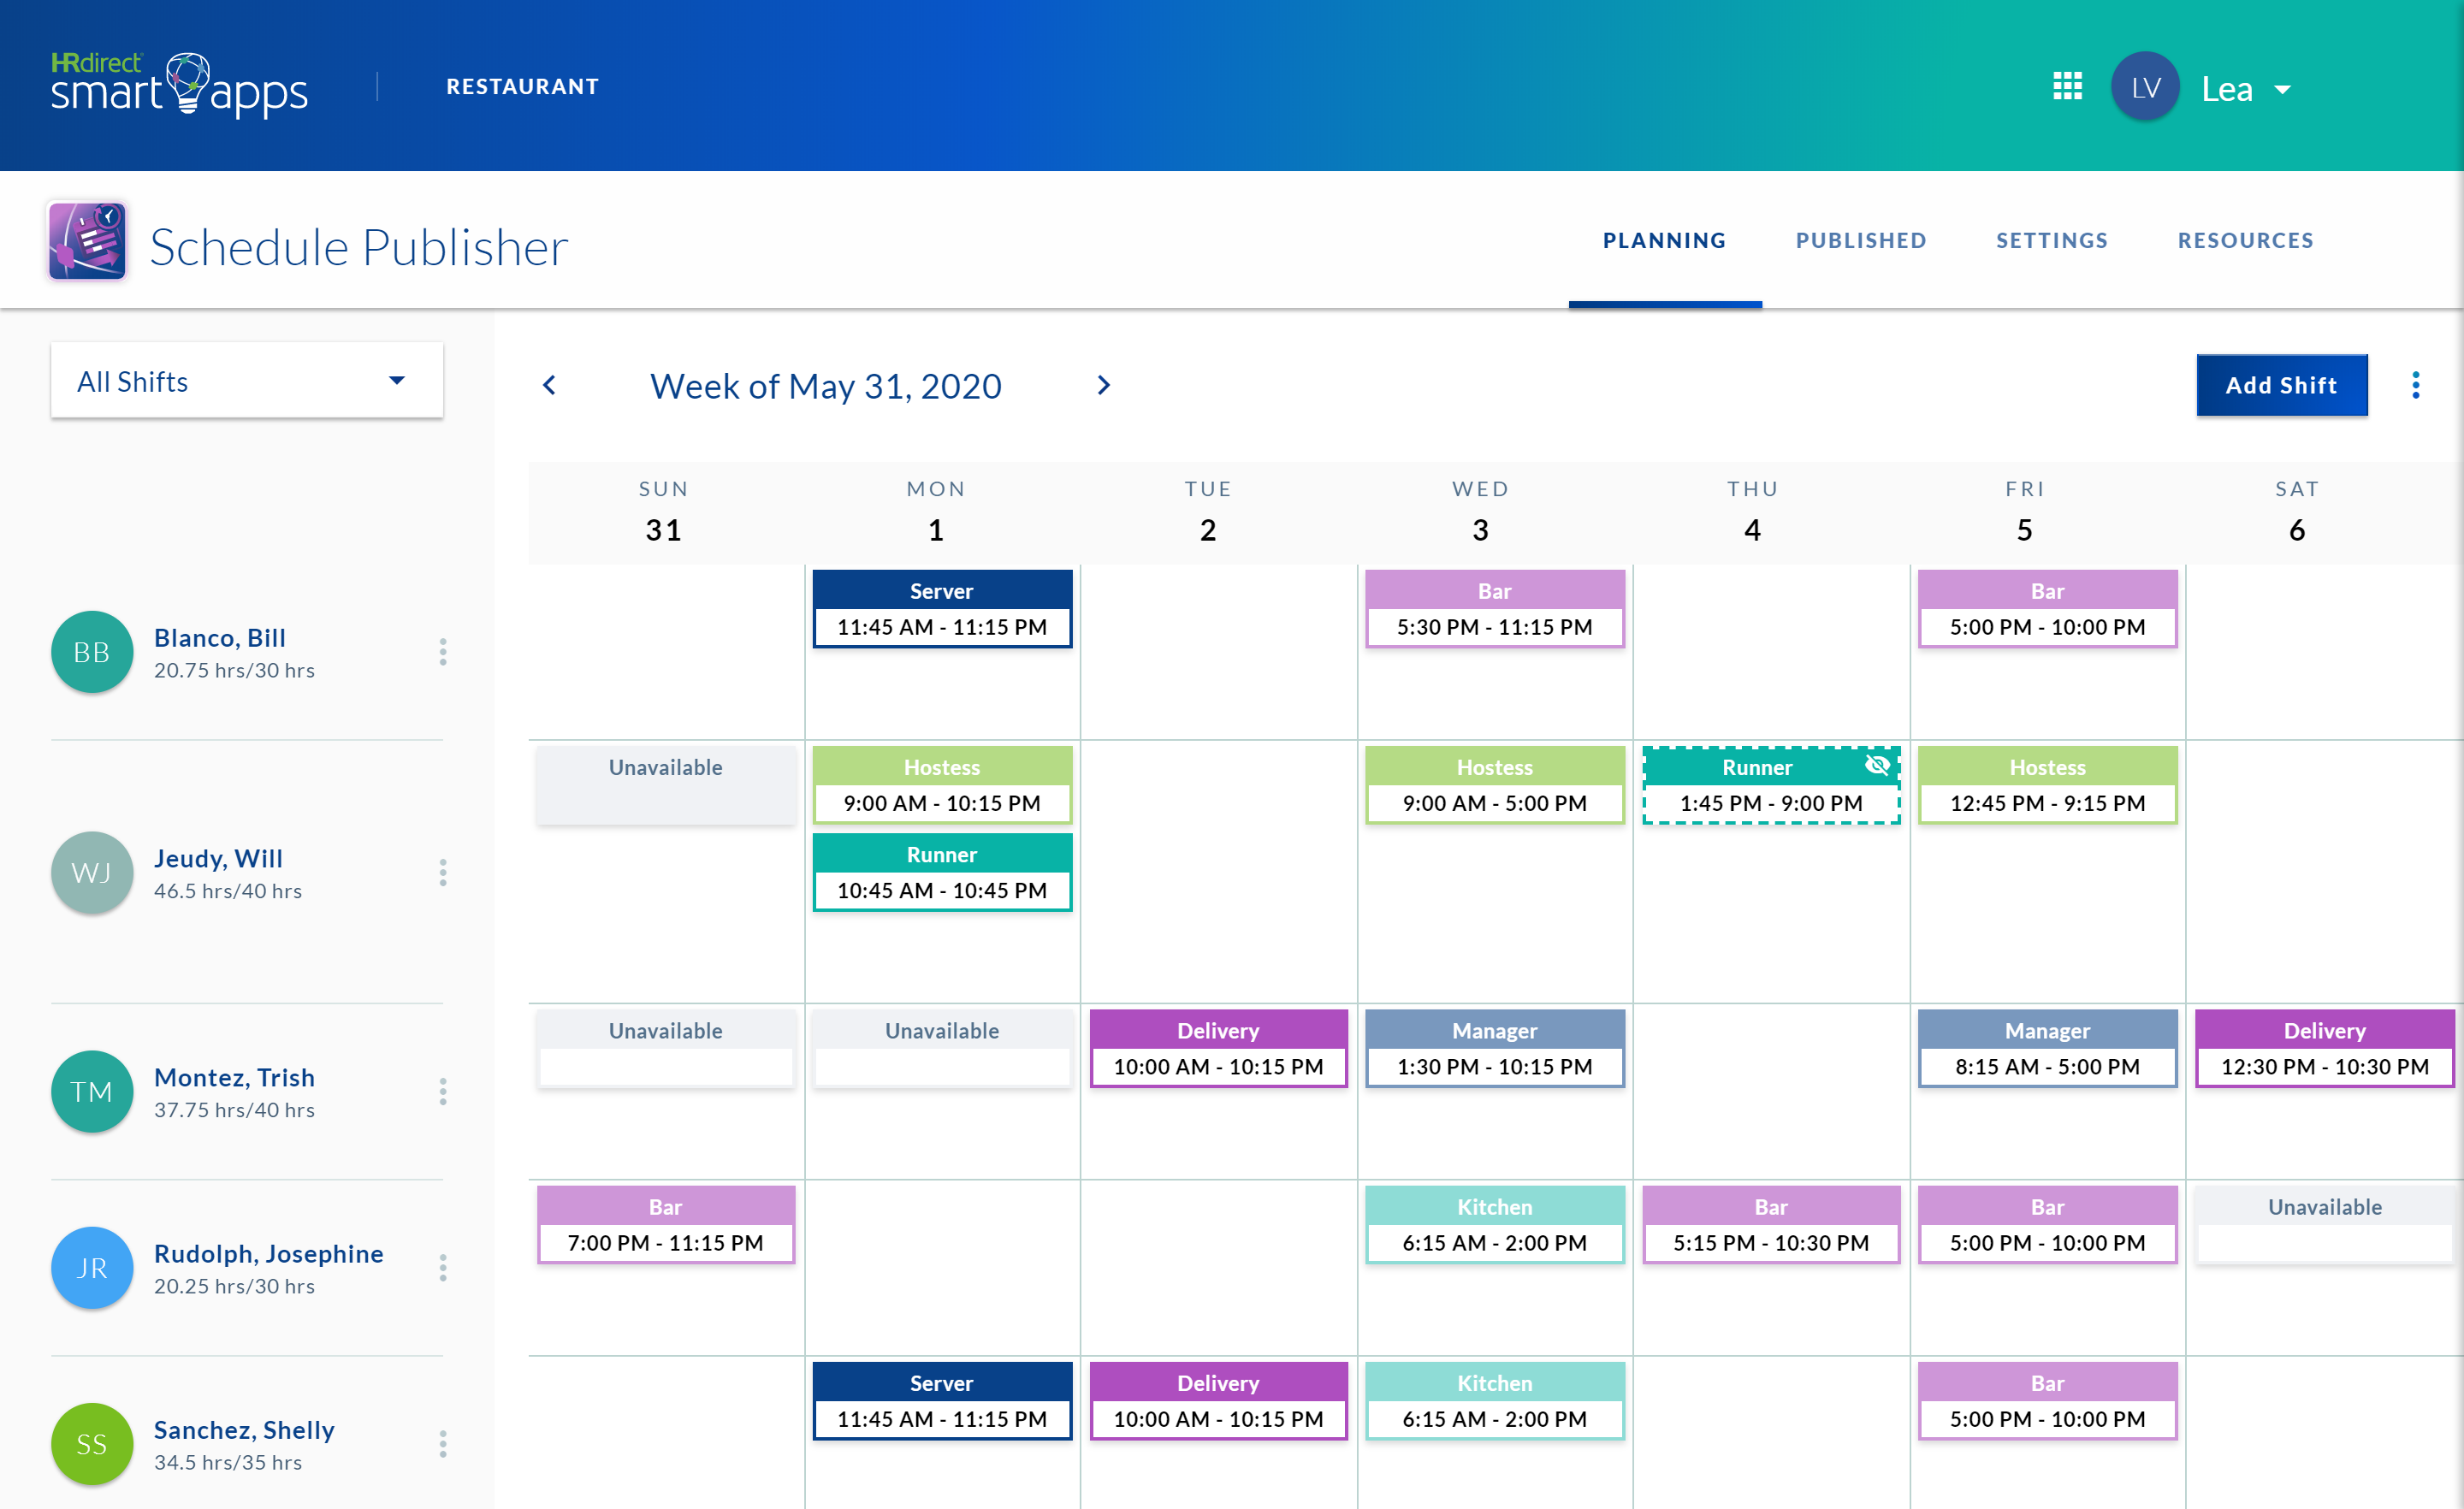 schedule publisher app planning page displaying a calendar with scheduled shift blocks for that week